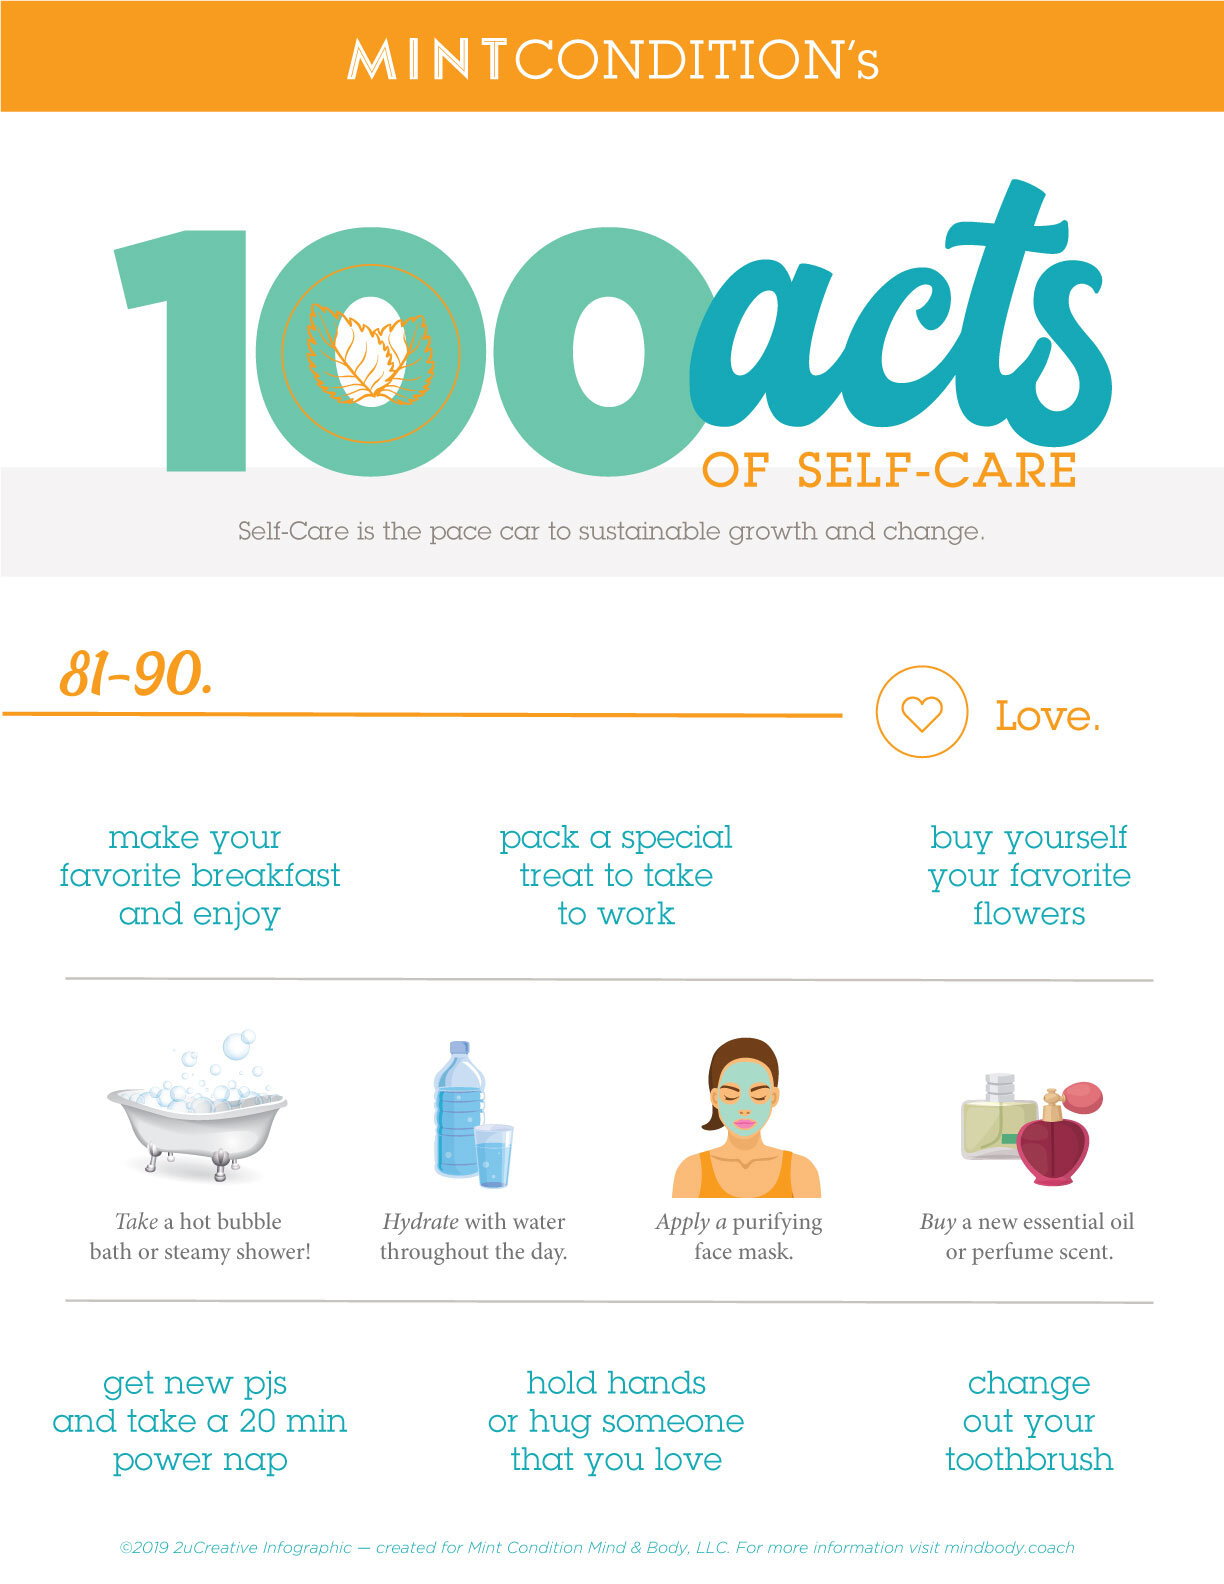 100-acts-infographics-81-90.jpg